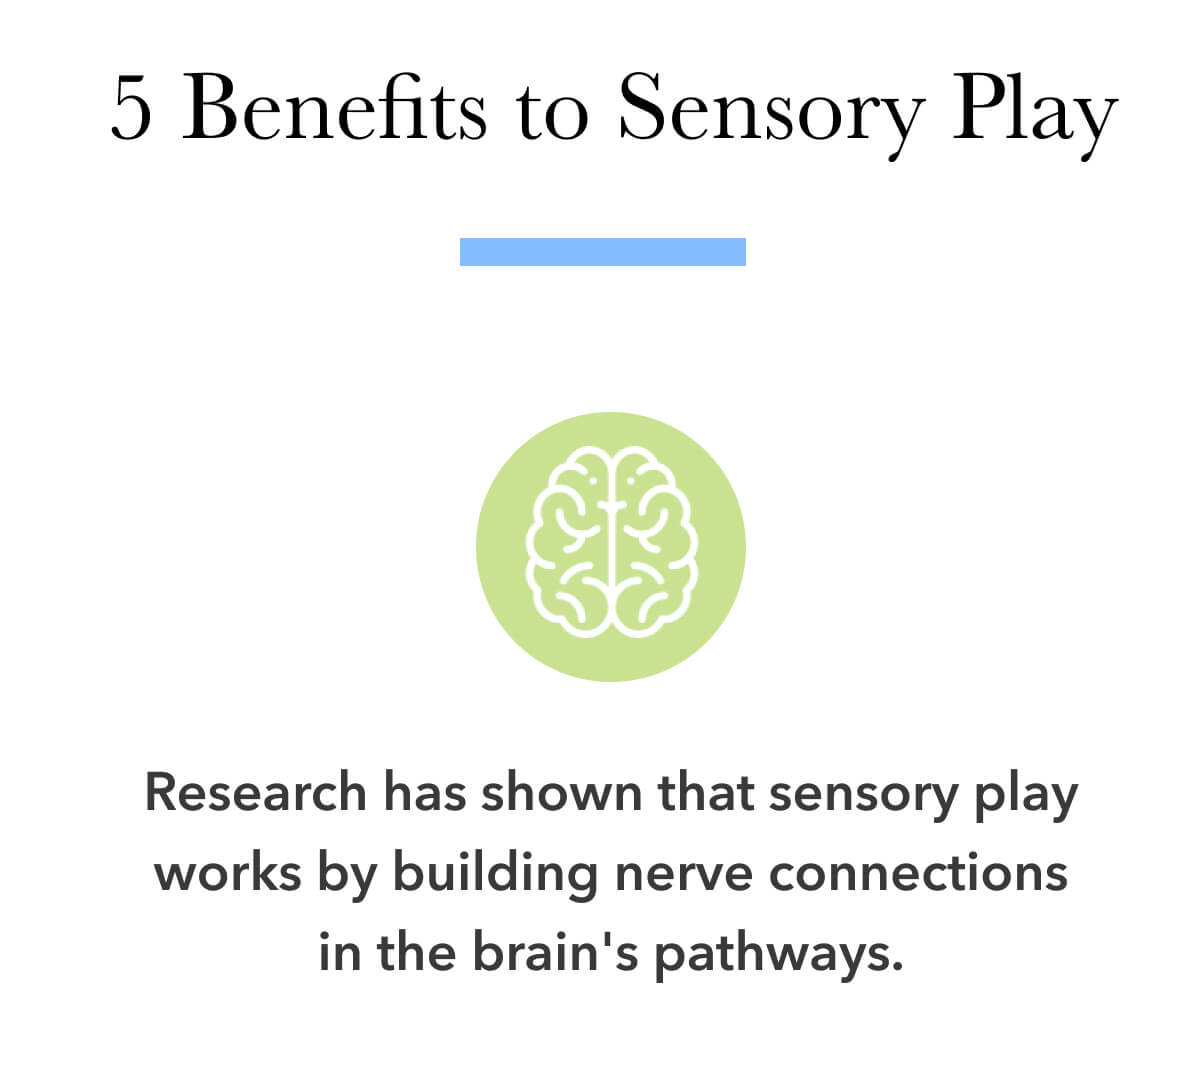 Research has shown that sensory play works by building nerve connections in the brain's pathways.